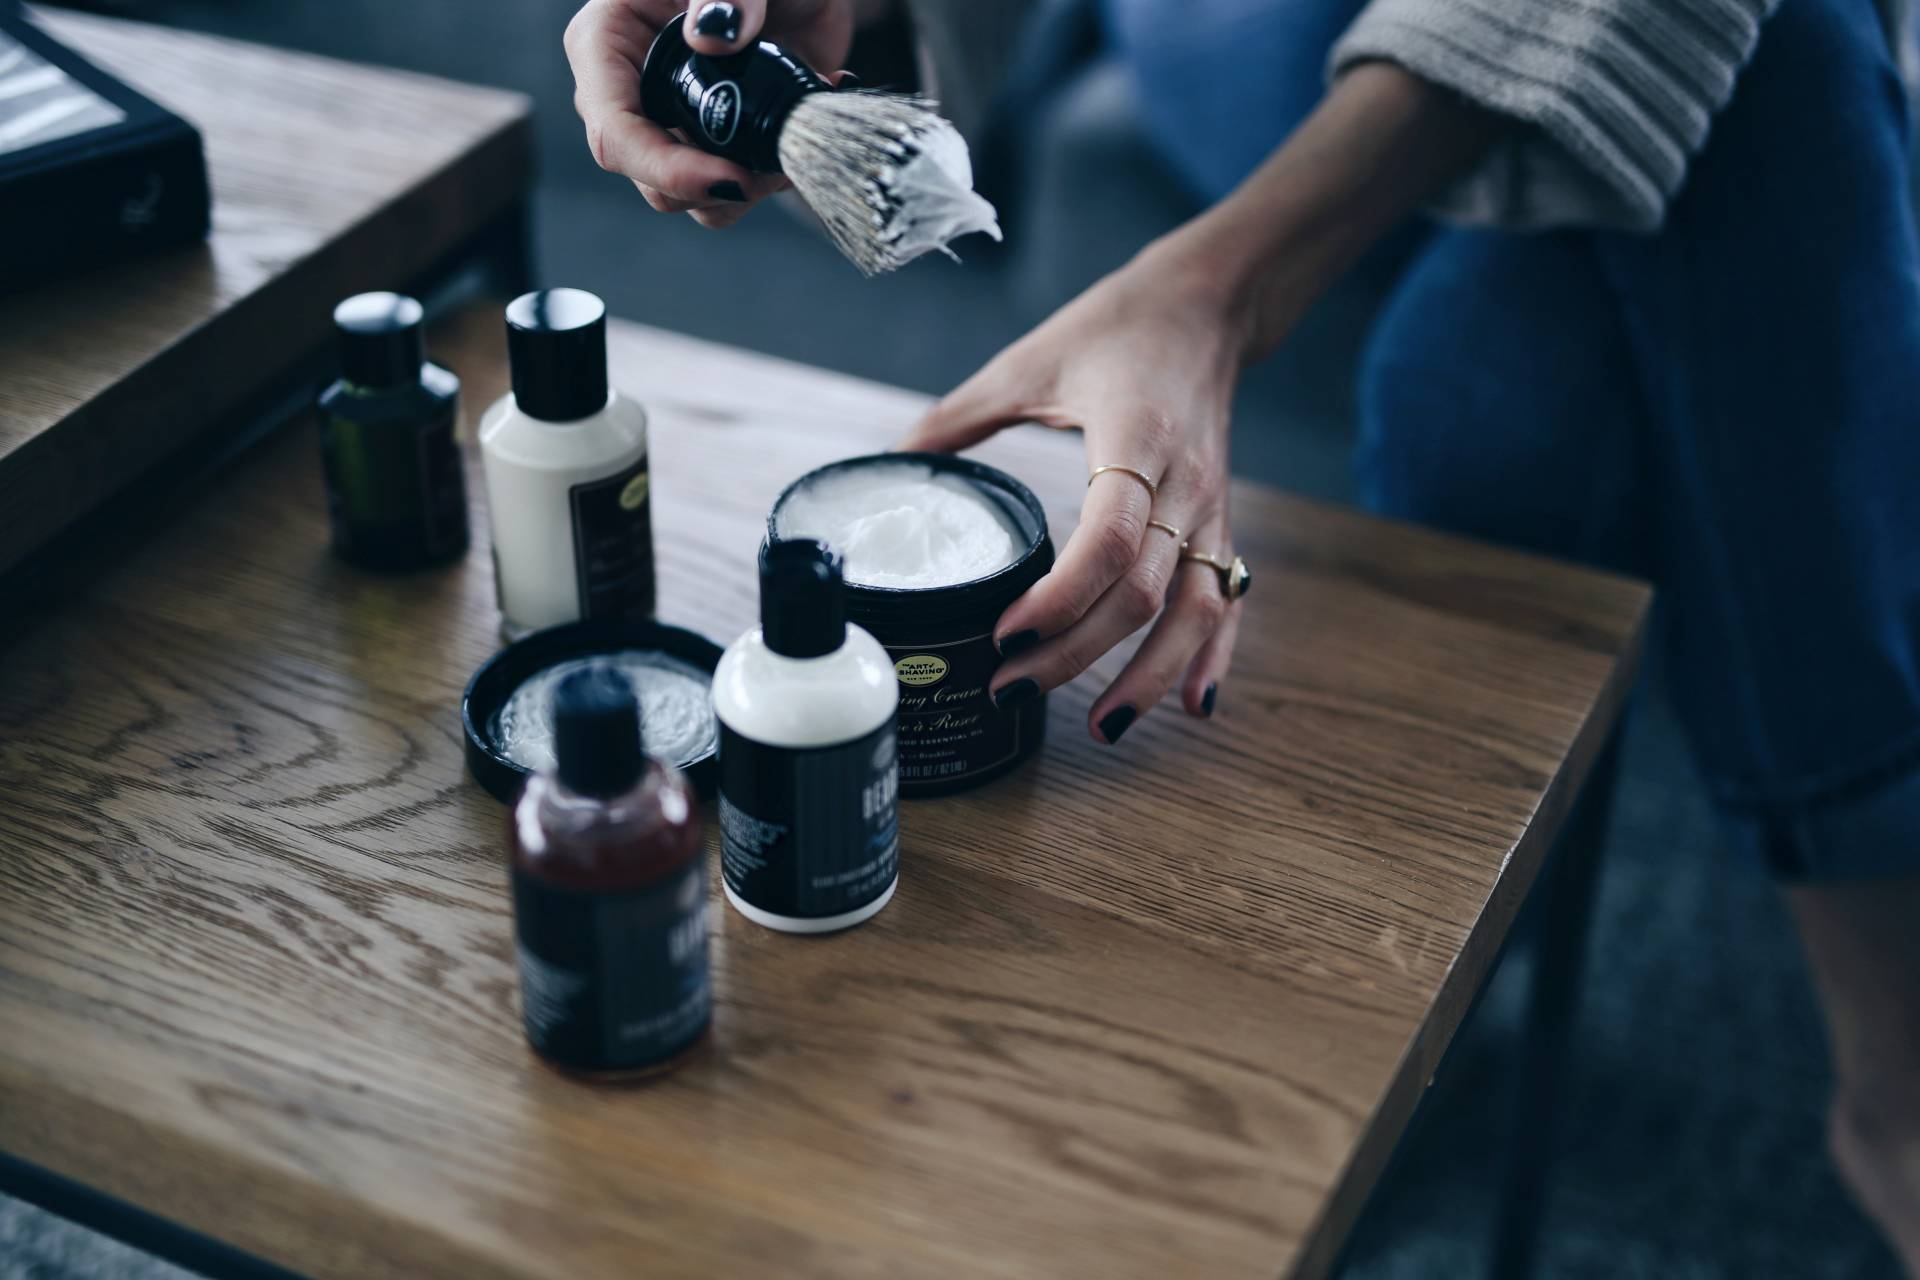 fi-Style and beauty blogger Jill Lansky of The August Diaries on what to get him for Valentine's day, the art of shaving, men's grooming